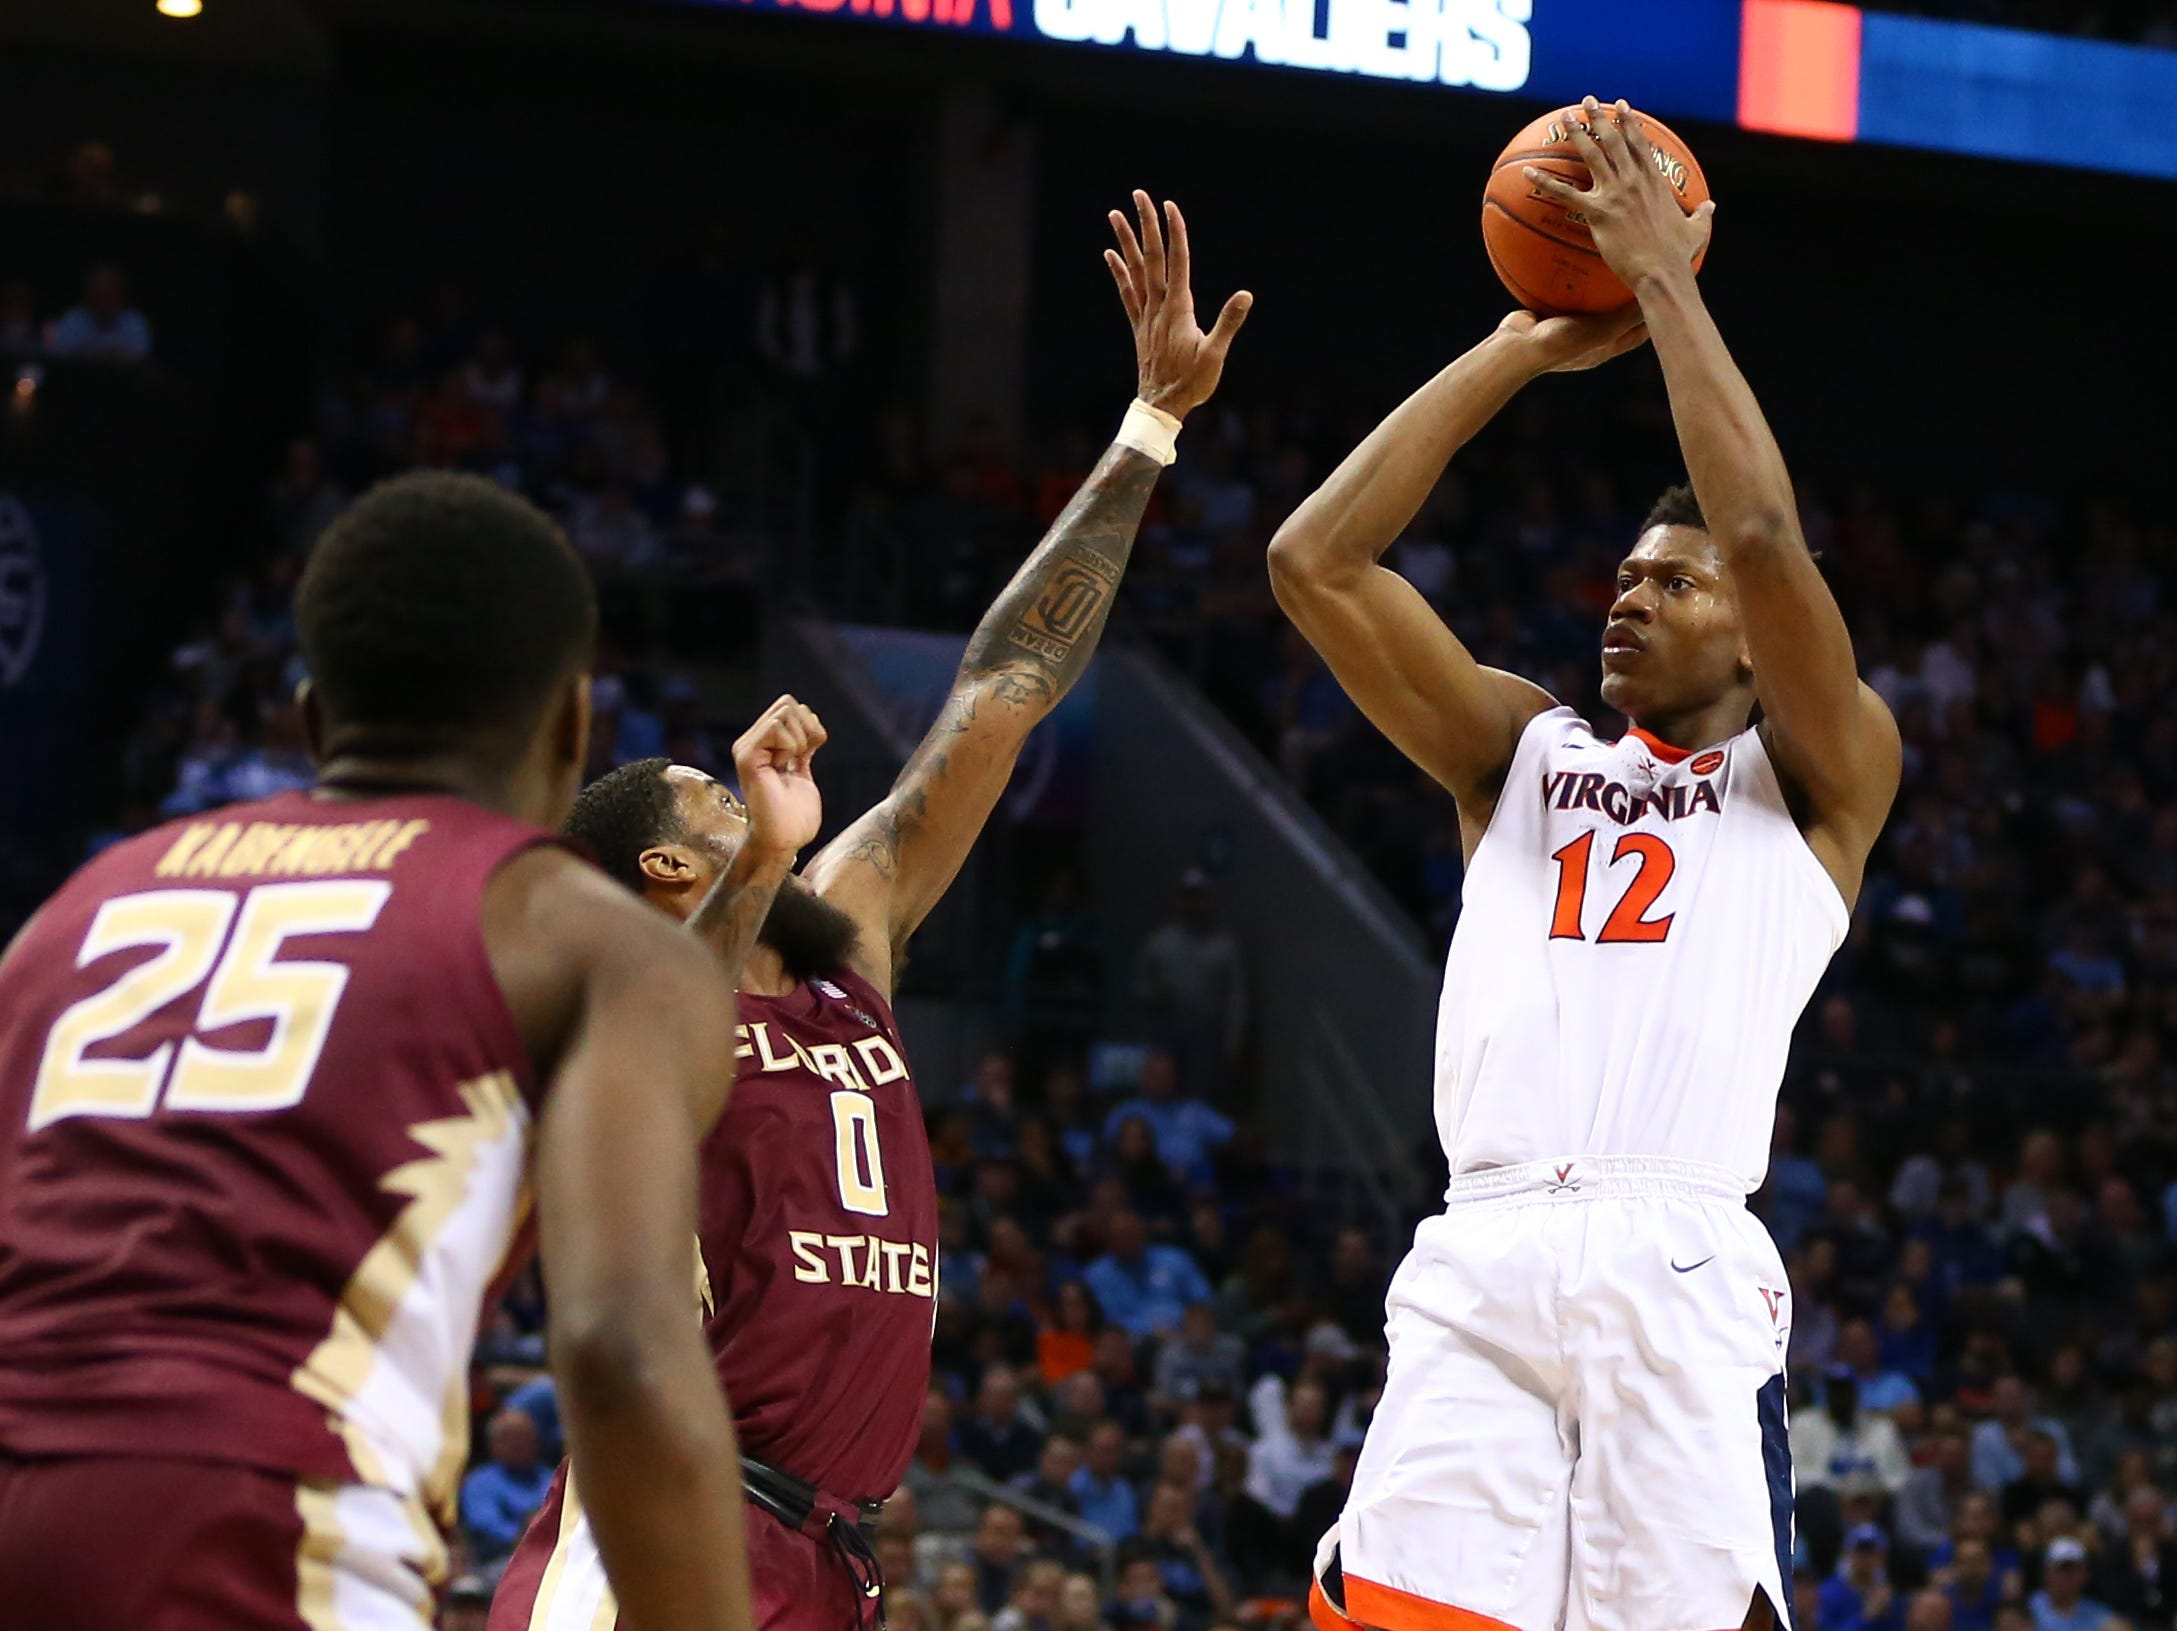 Mar 15, 2019; Charlotte, NC, USA; Virginia Cavaliers guard De'Andre Hunter (12) shoots the ball against Florida State Seminoles forward Phil Cofer (0) in the second half in the ACC conference tournament at Spectrum Center. Mandatory Credit: Jeremy Brevard-USA TODAY Sports